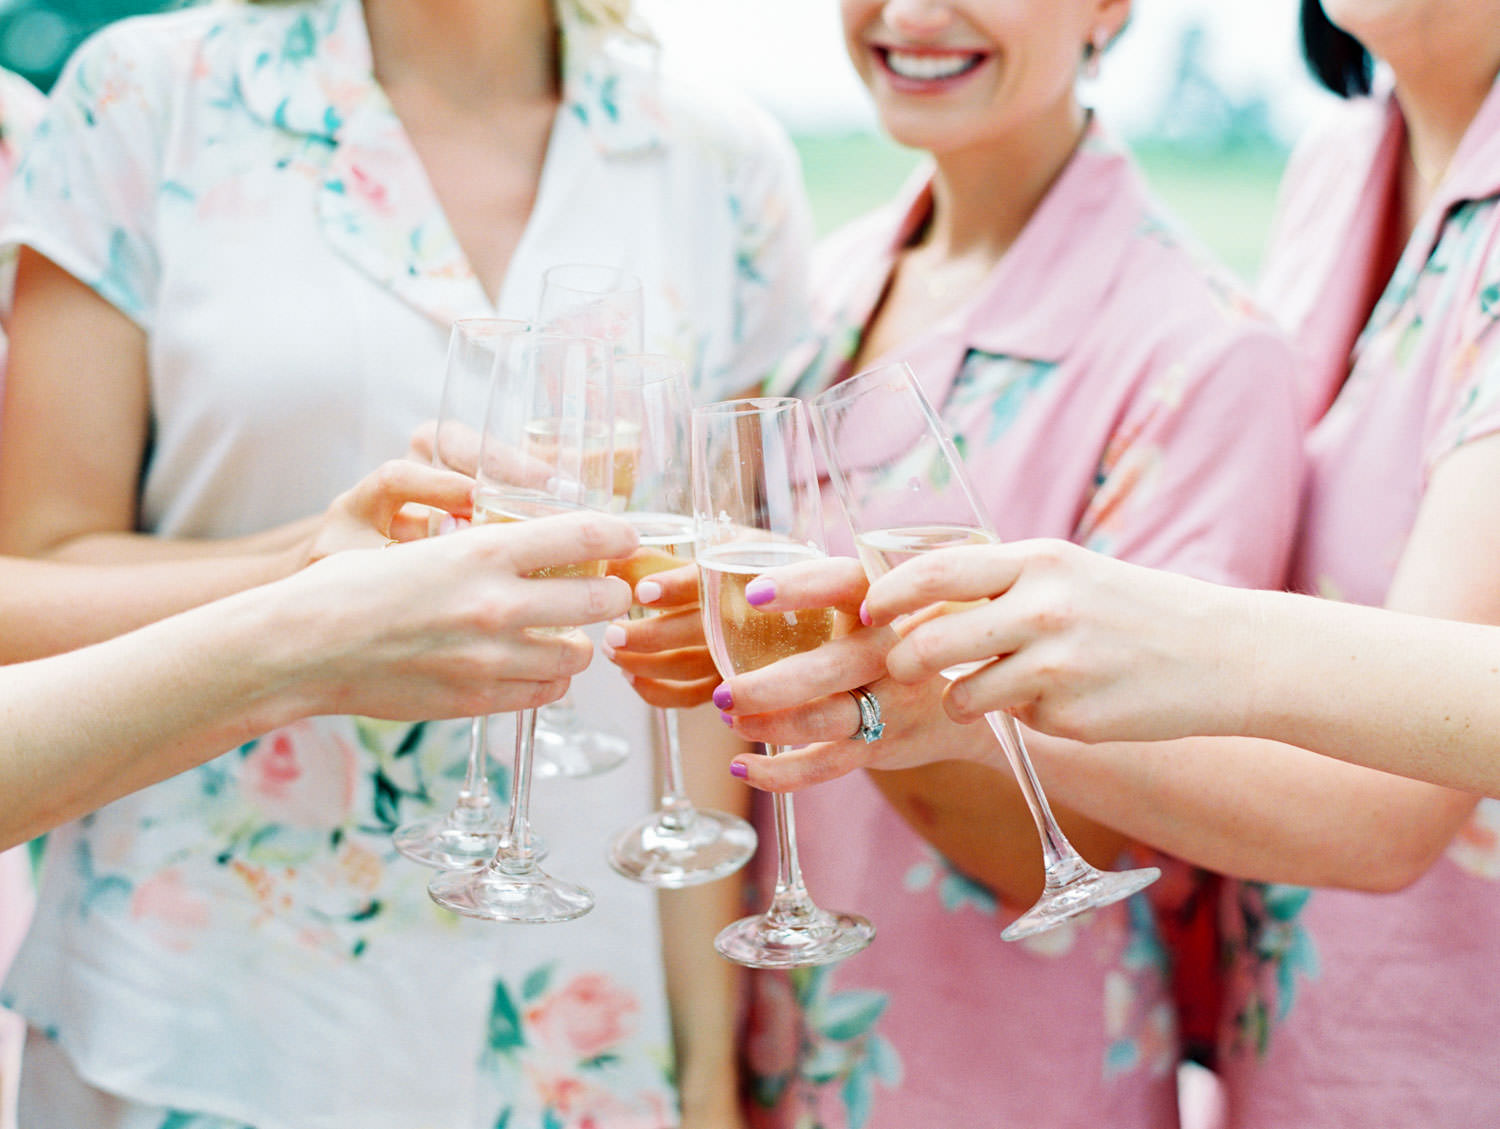 Bride in white silk pajamas with floral pattern and bridesmaids in pink matching silk pjs toasting with champagne, Lodge at Torrey Pines wedding, film photography by Cavin Elizabeth Photography